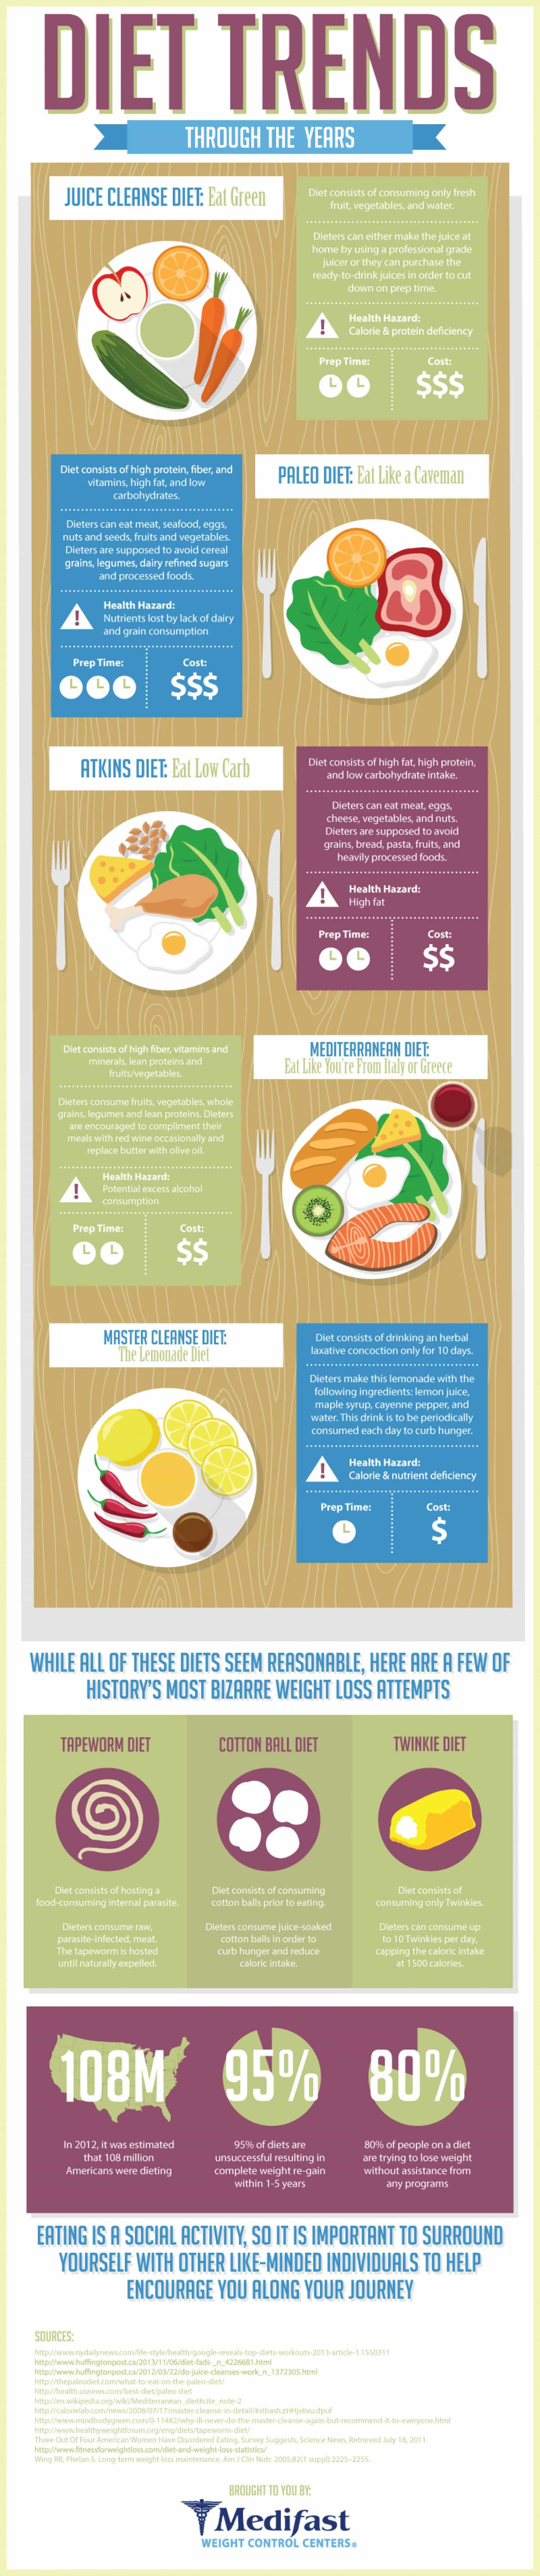 the atkins diet vs the food